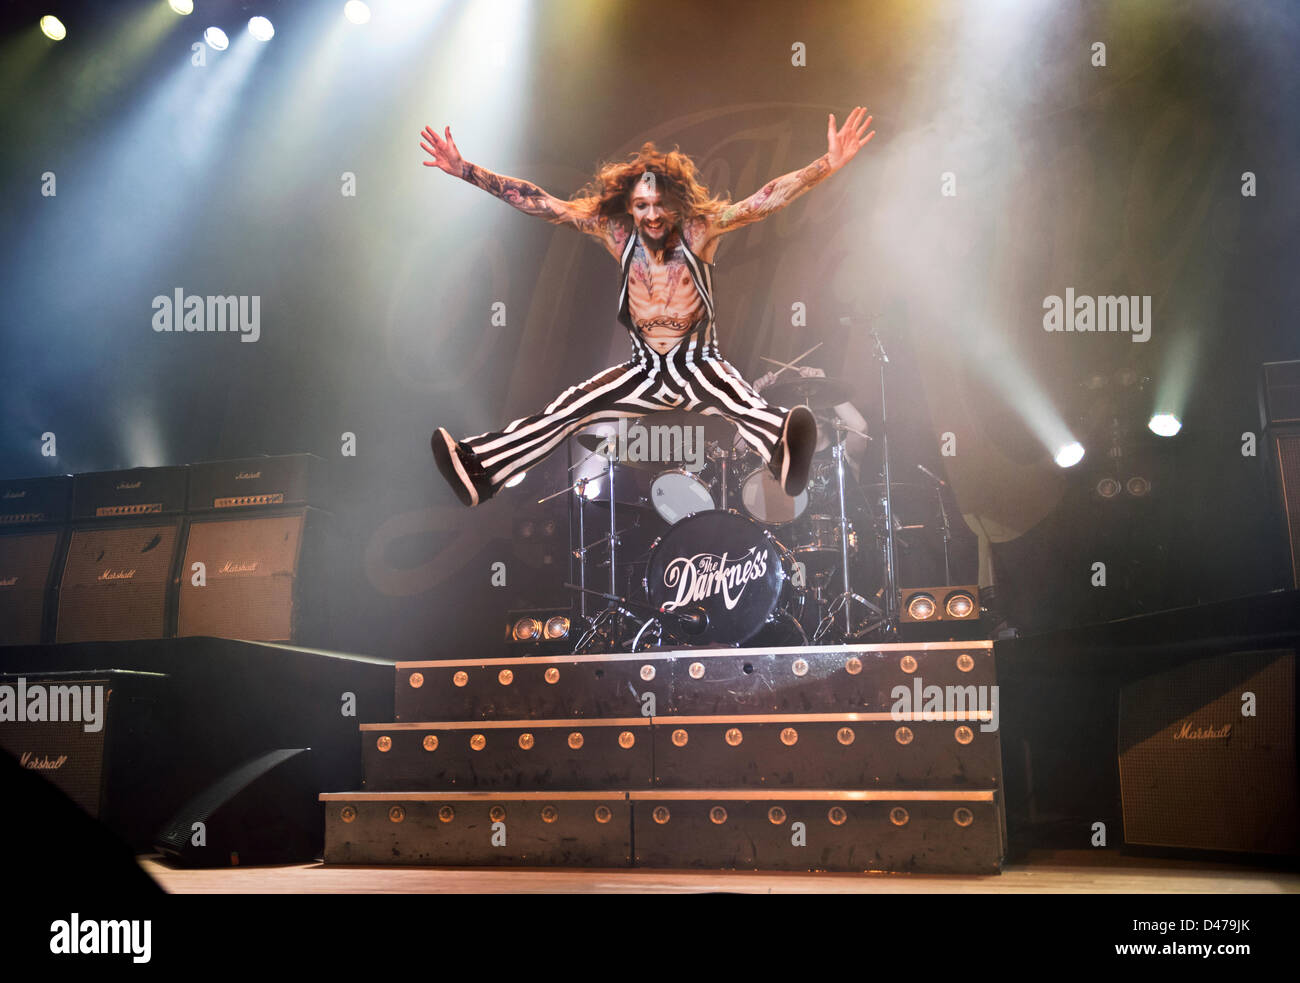 Wolverhampton, UK. 6th March 2013. Rock band The Darkness, with singer Justin Hawkins, at Wolverhampton Civic Hall, - Stock Image